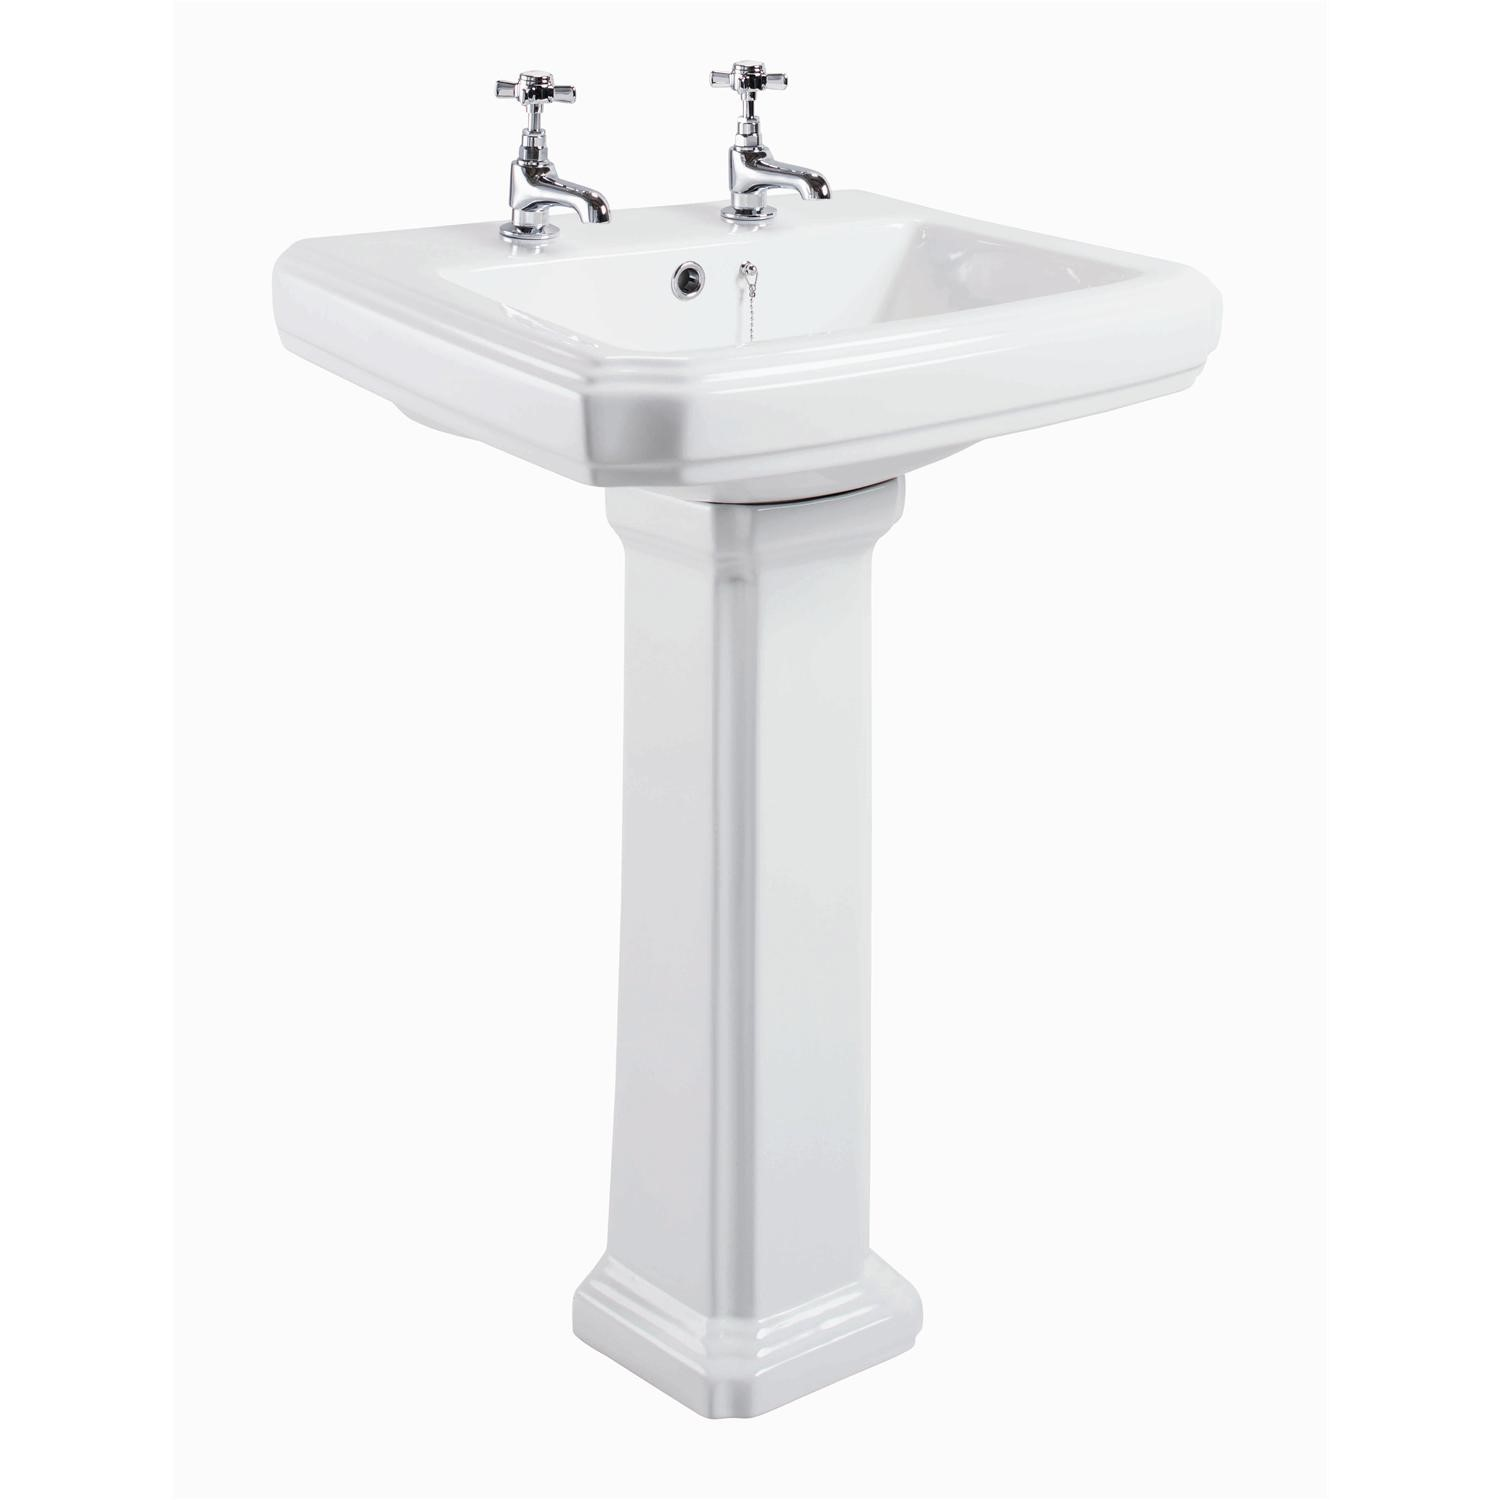 Taylor U0026amp; Moore Traditional Pedestal Sink   2 Tap Holes